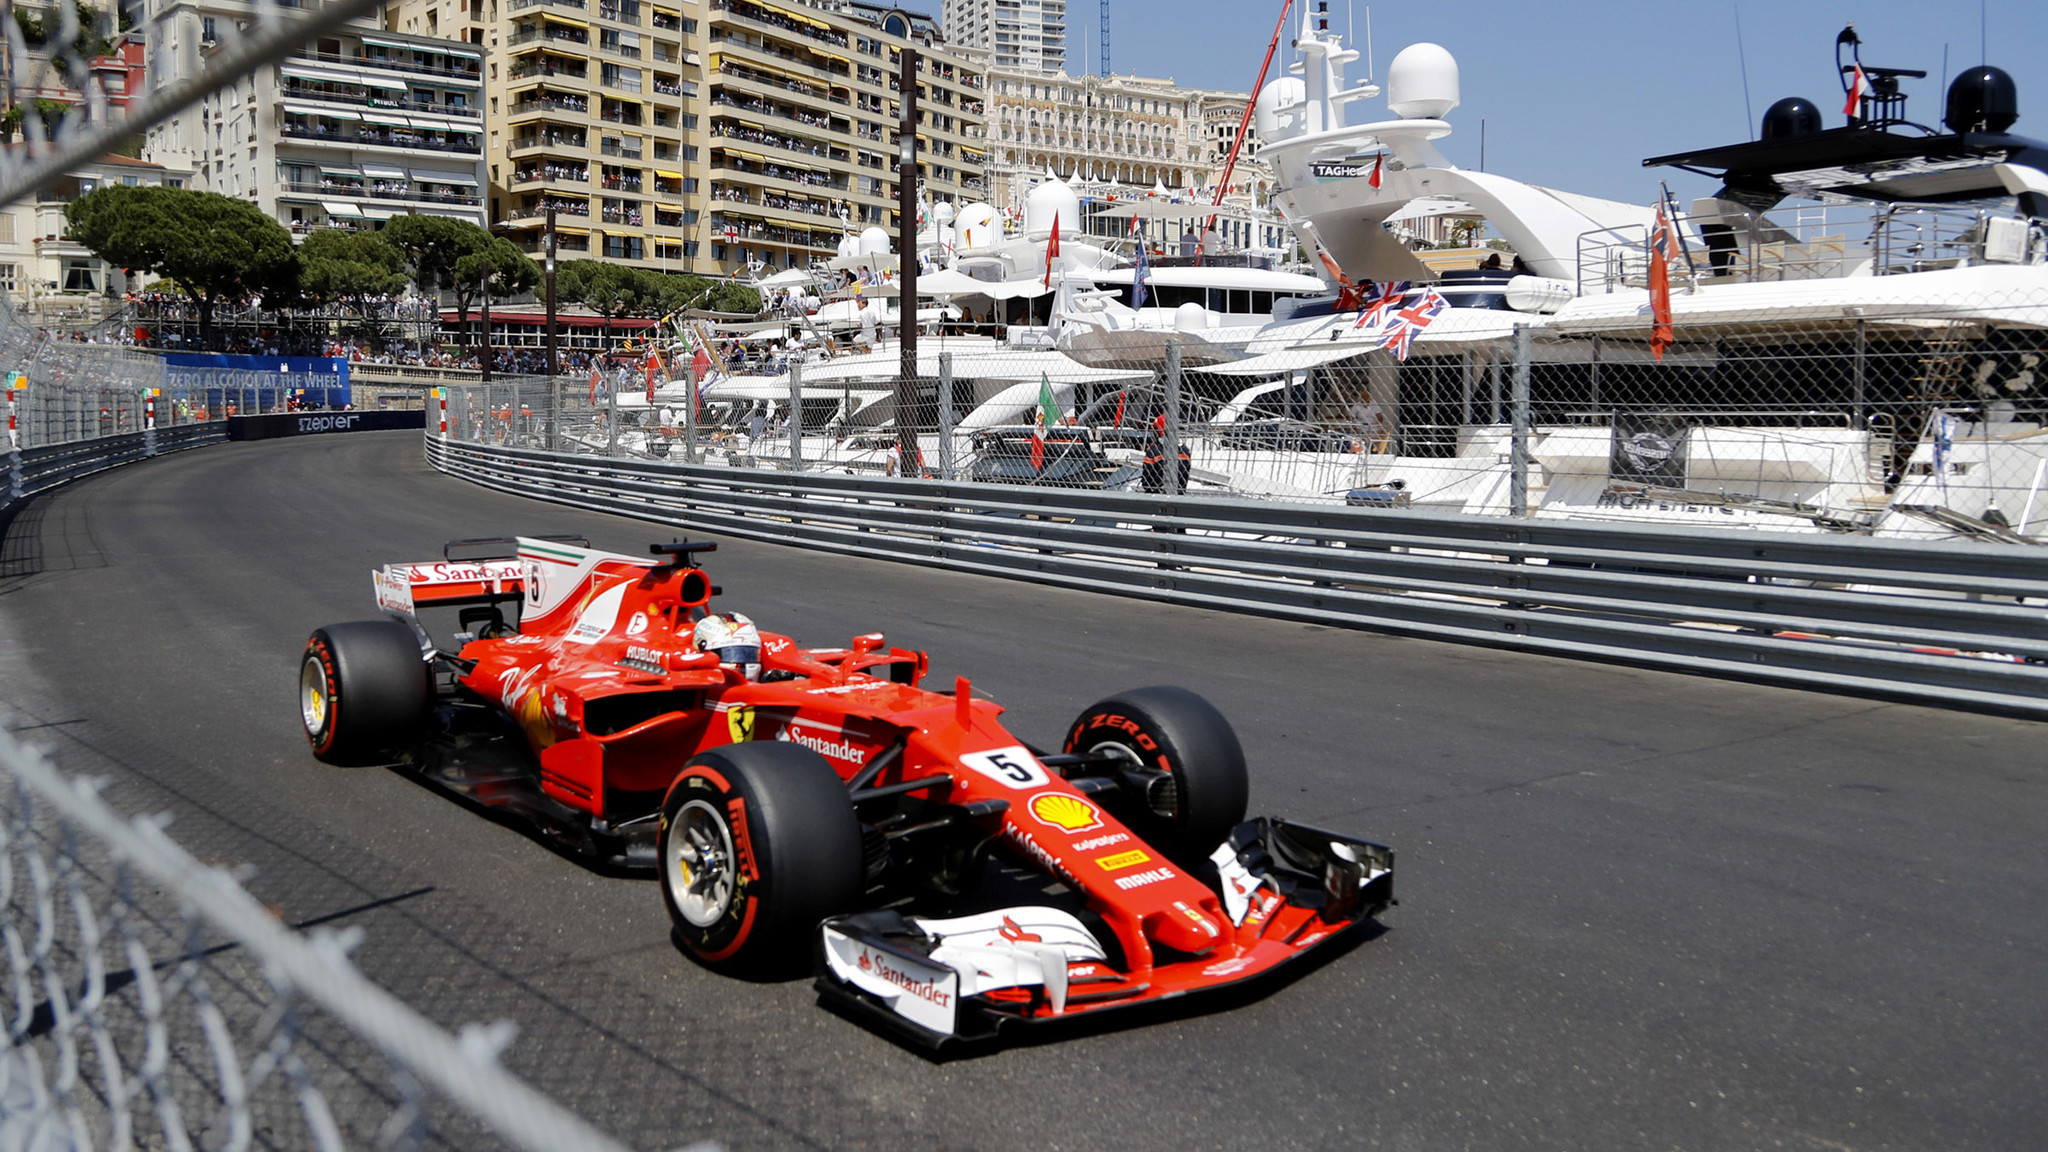 sebastian vettel wins monaco grand prix to extend lead in formula one standings la times. Black Bedroom Furniture Sets. Home Design Ideas